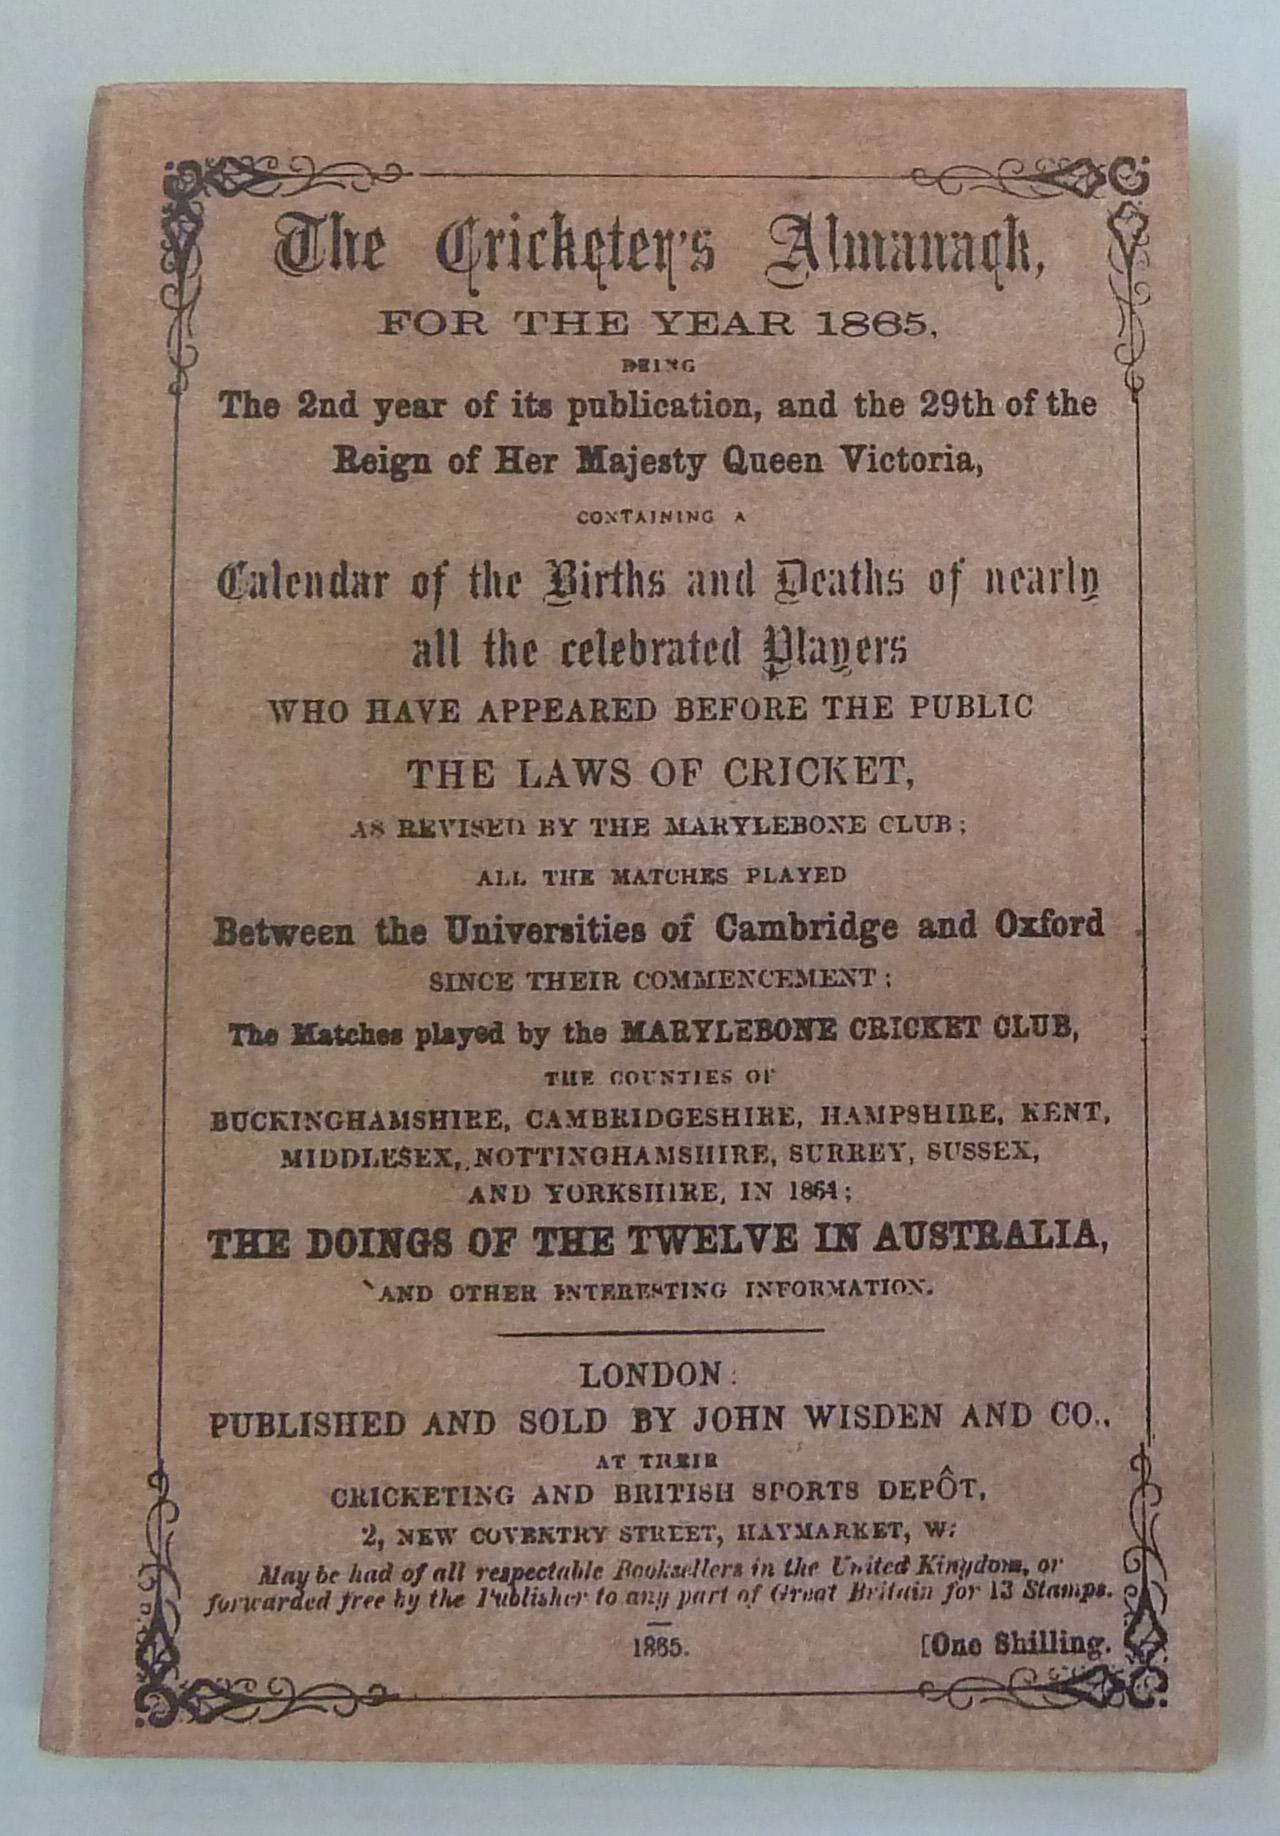 **Wisden The Cricketer's Almanack for the Year 1865